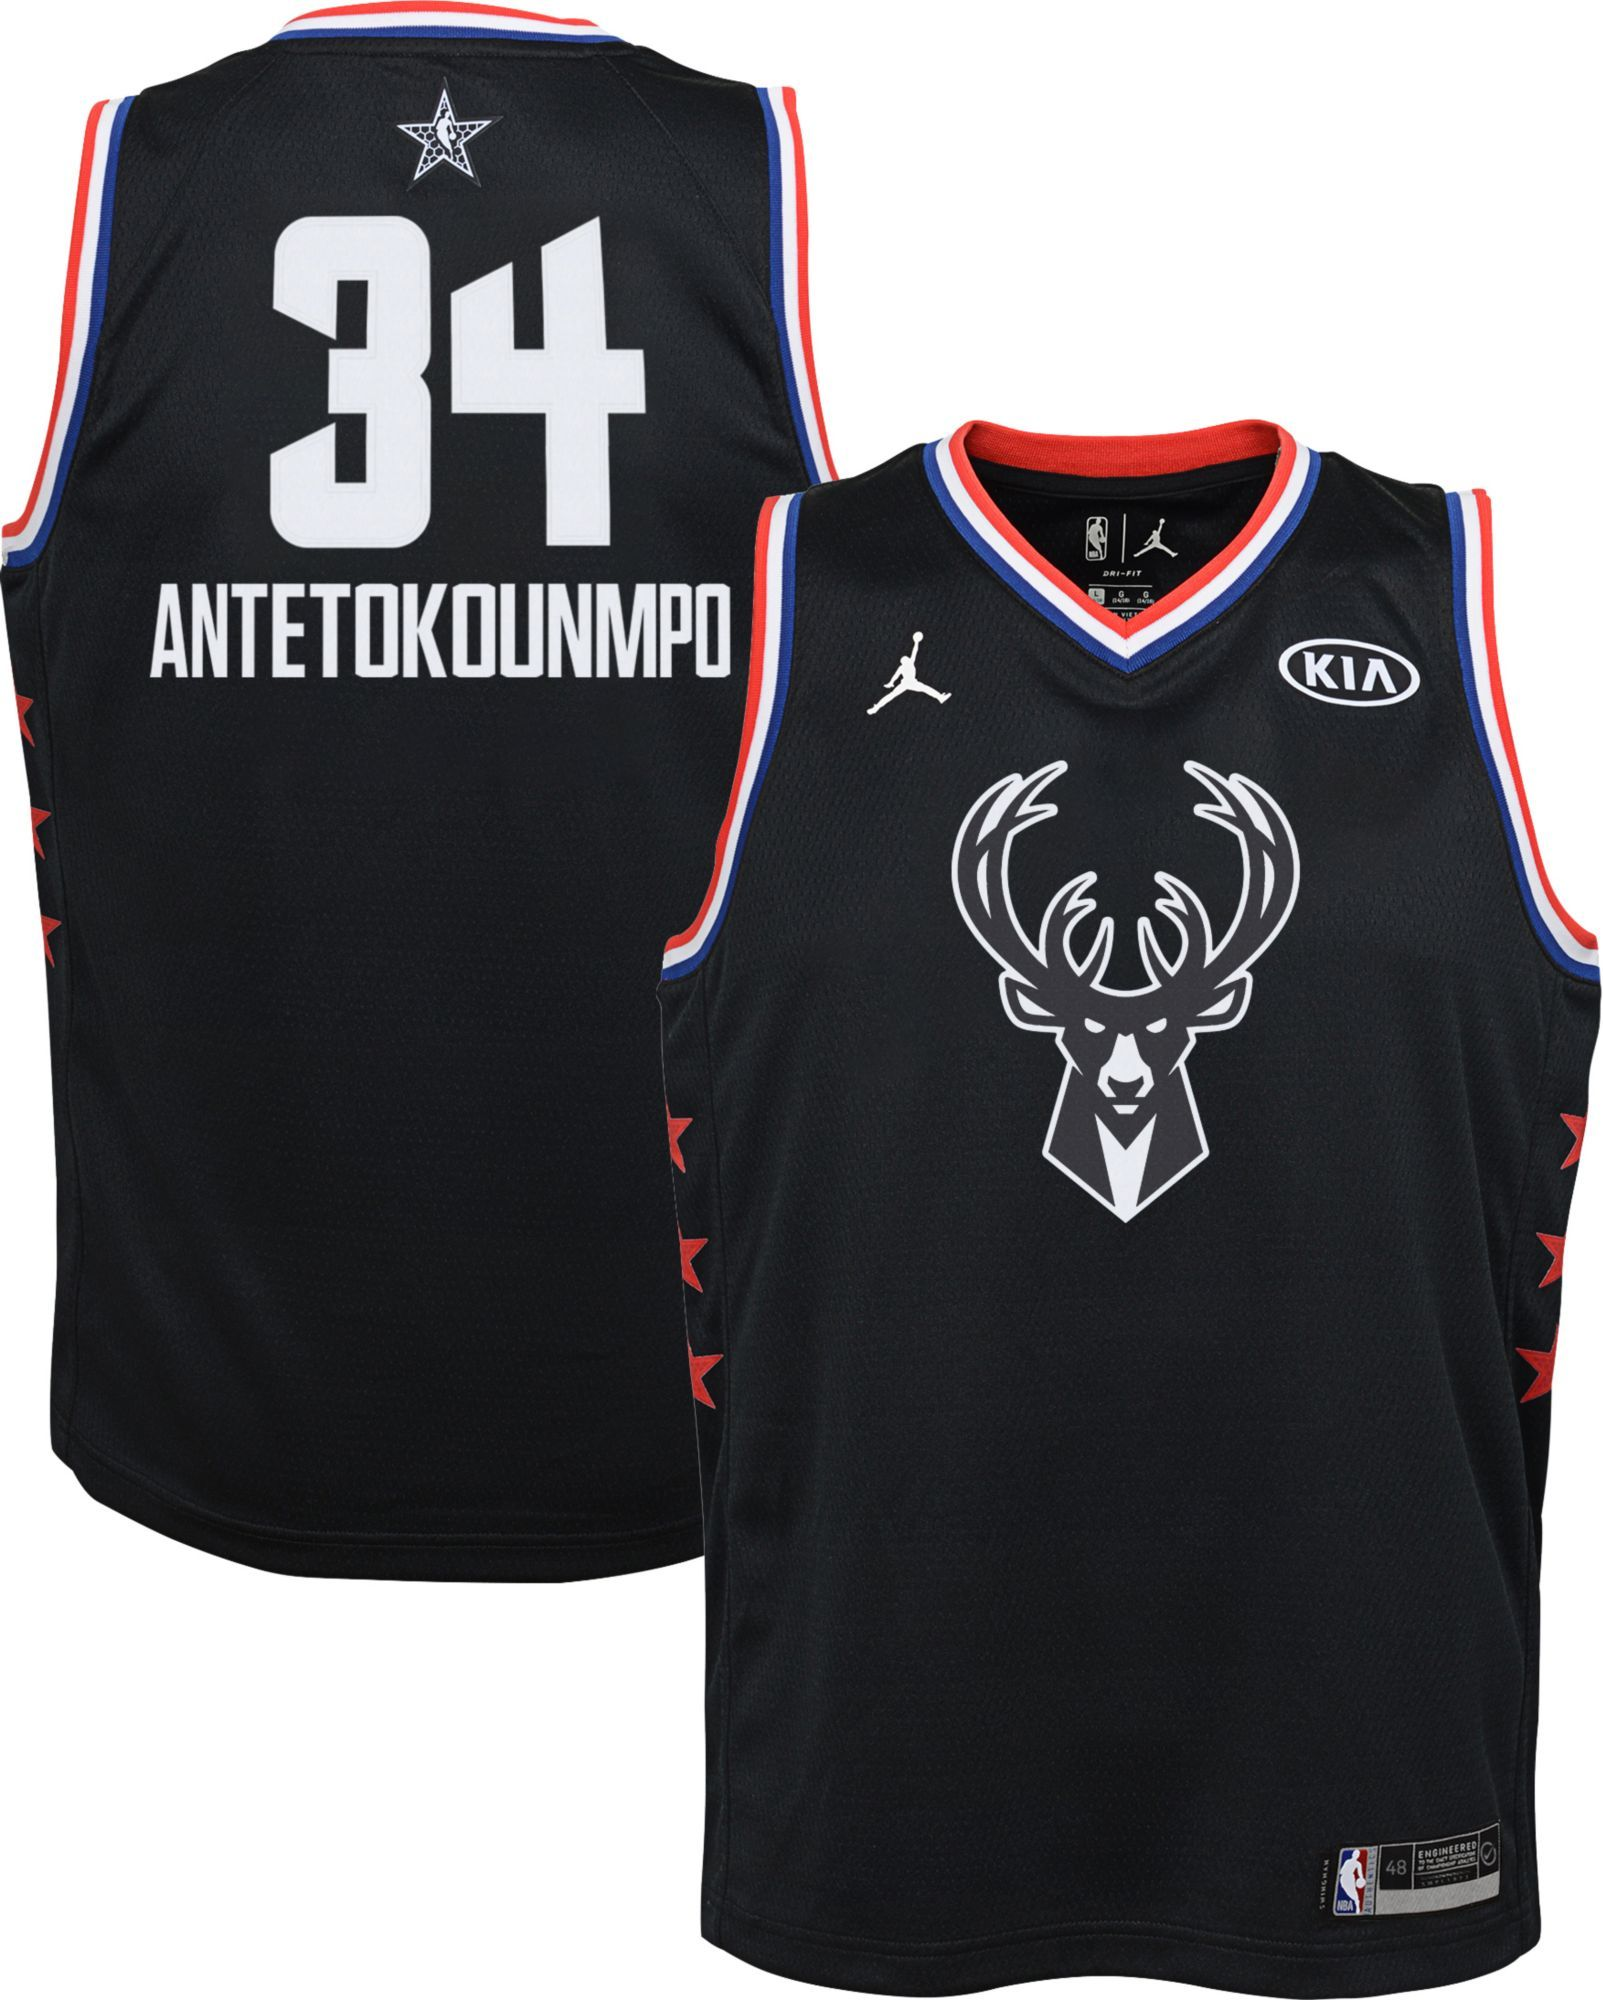 competitive price 47c33 3bc43 Jordan Youth 2019 NBA All-Star Game Giannis Antetokounmpo ...